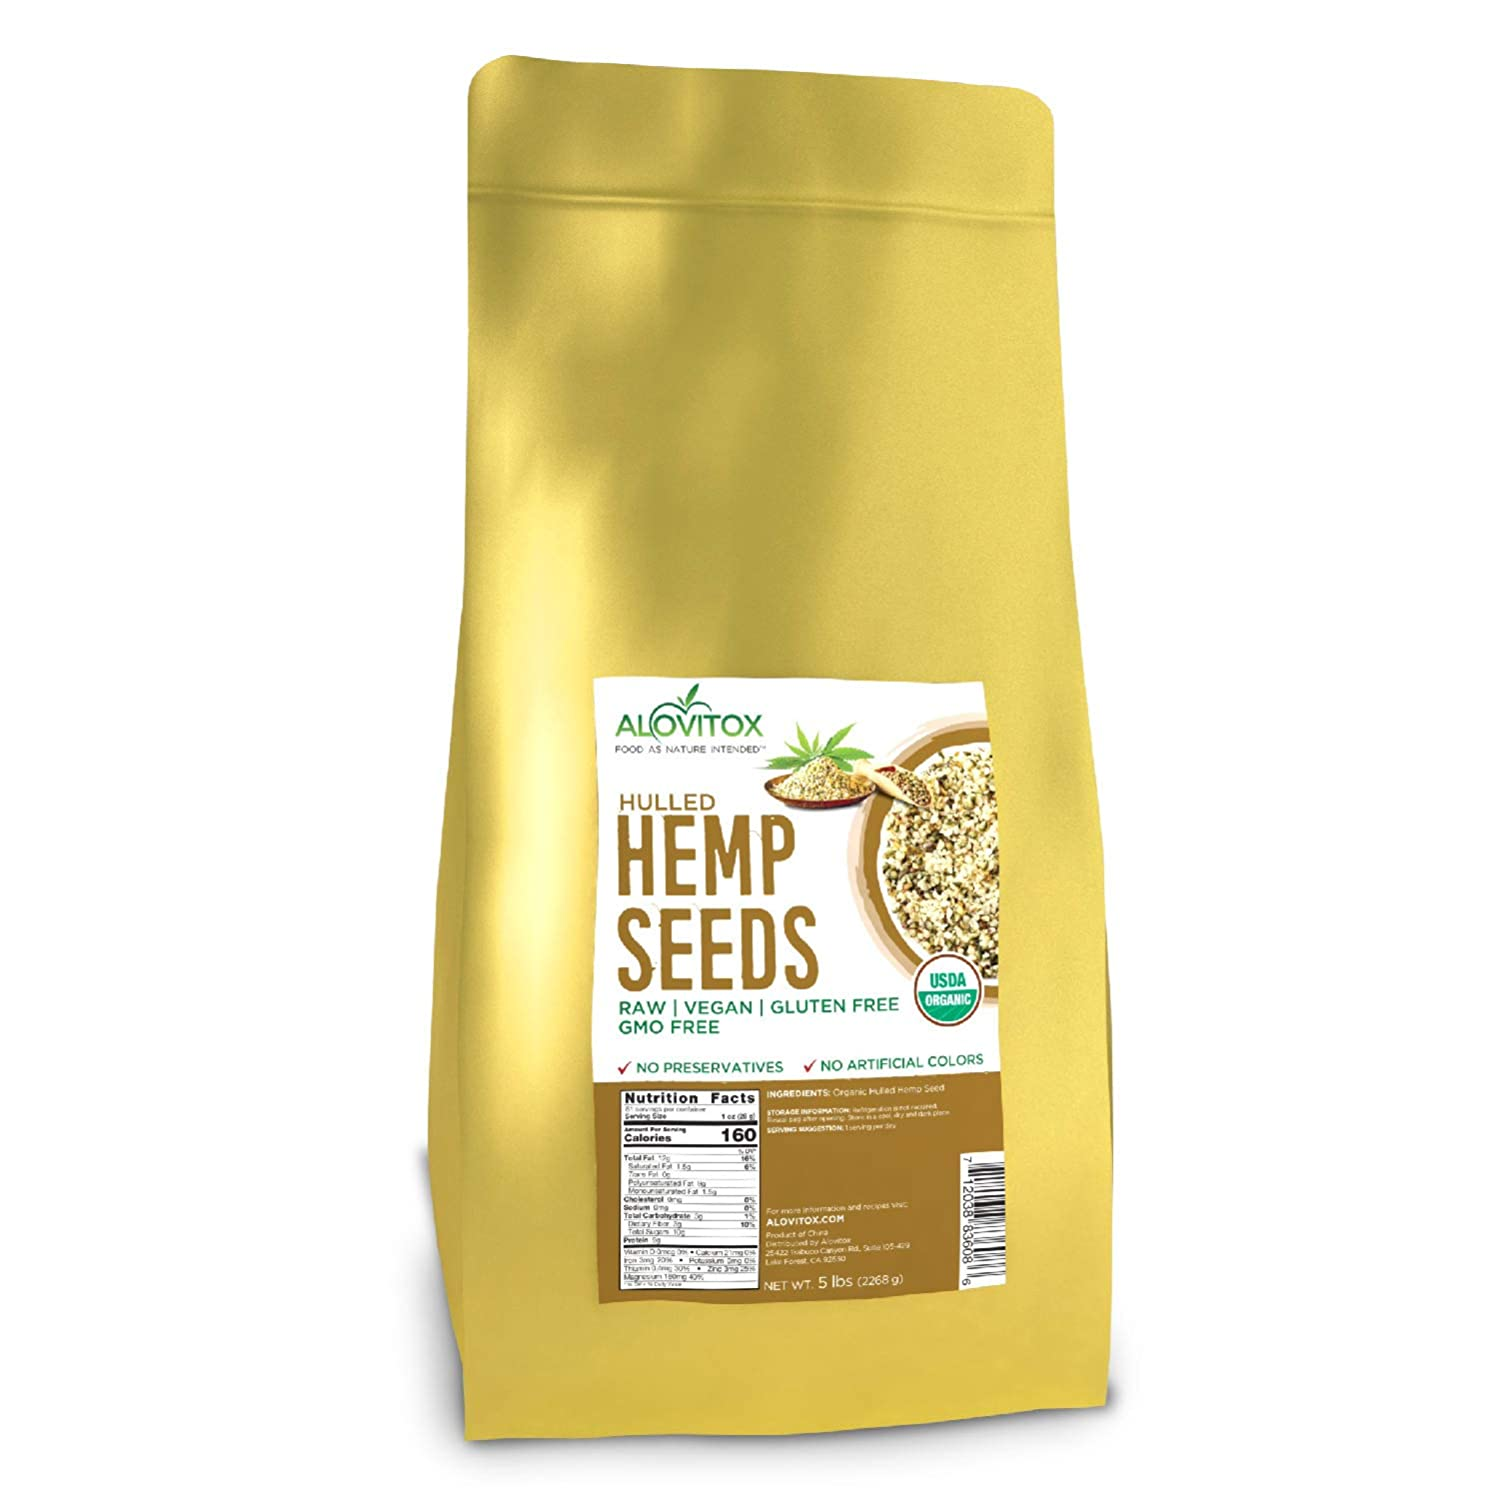 Organic Hulled Hemp Seeds 5lb   Raw Hemp Hearts 9g of Protein Omegas 3 and 6 Fatty Acids - Vegan, Keto, Paleo Friendly Low Carb Energizing Superfood For Snack, Salads, Topping by Alovitiox   5 lb Bag